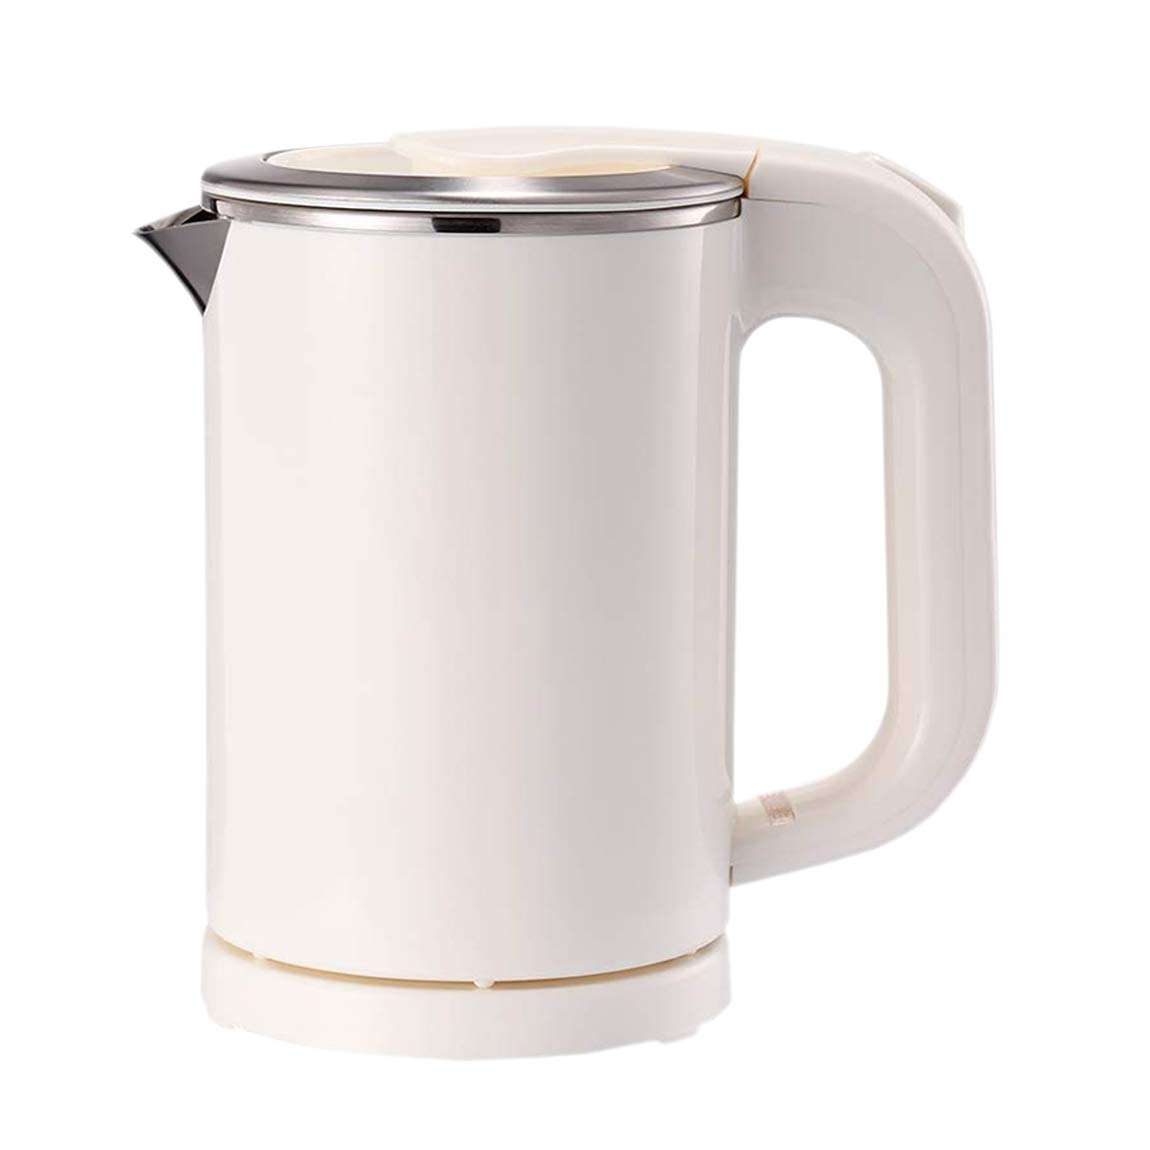 EAMATE 0.5L Portable Travel Electric Kettle Suitable For Traveling Cooking, Boiling (White)